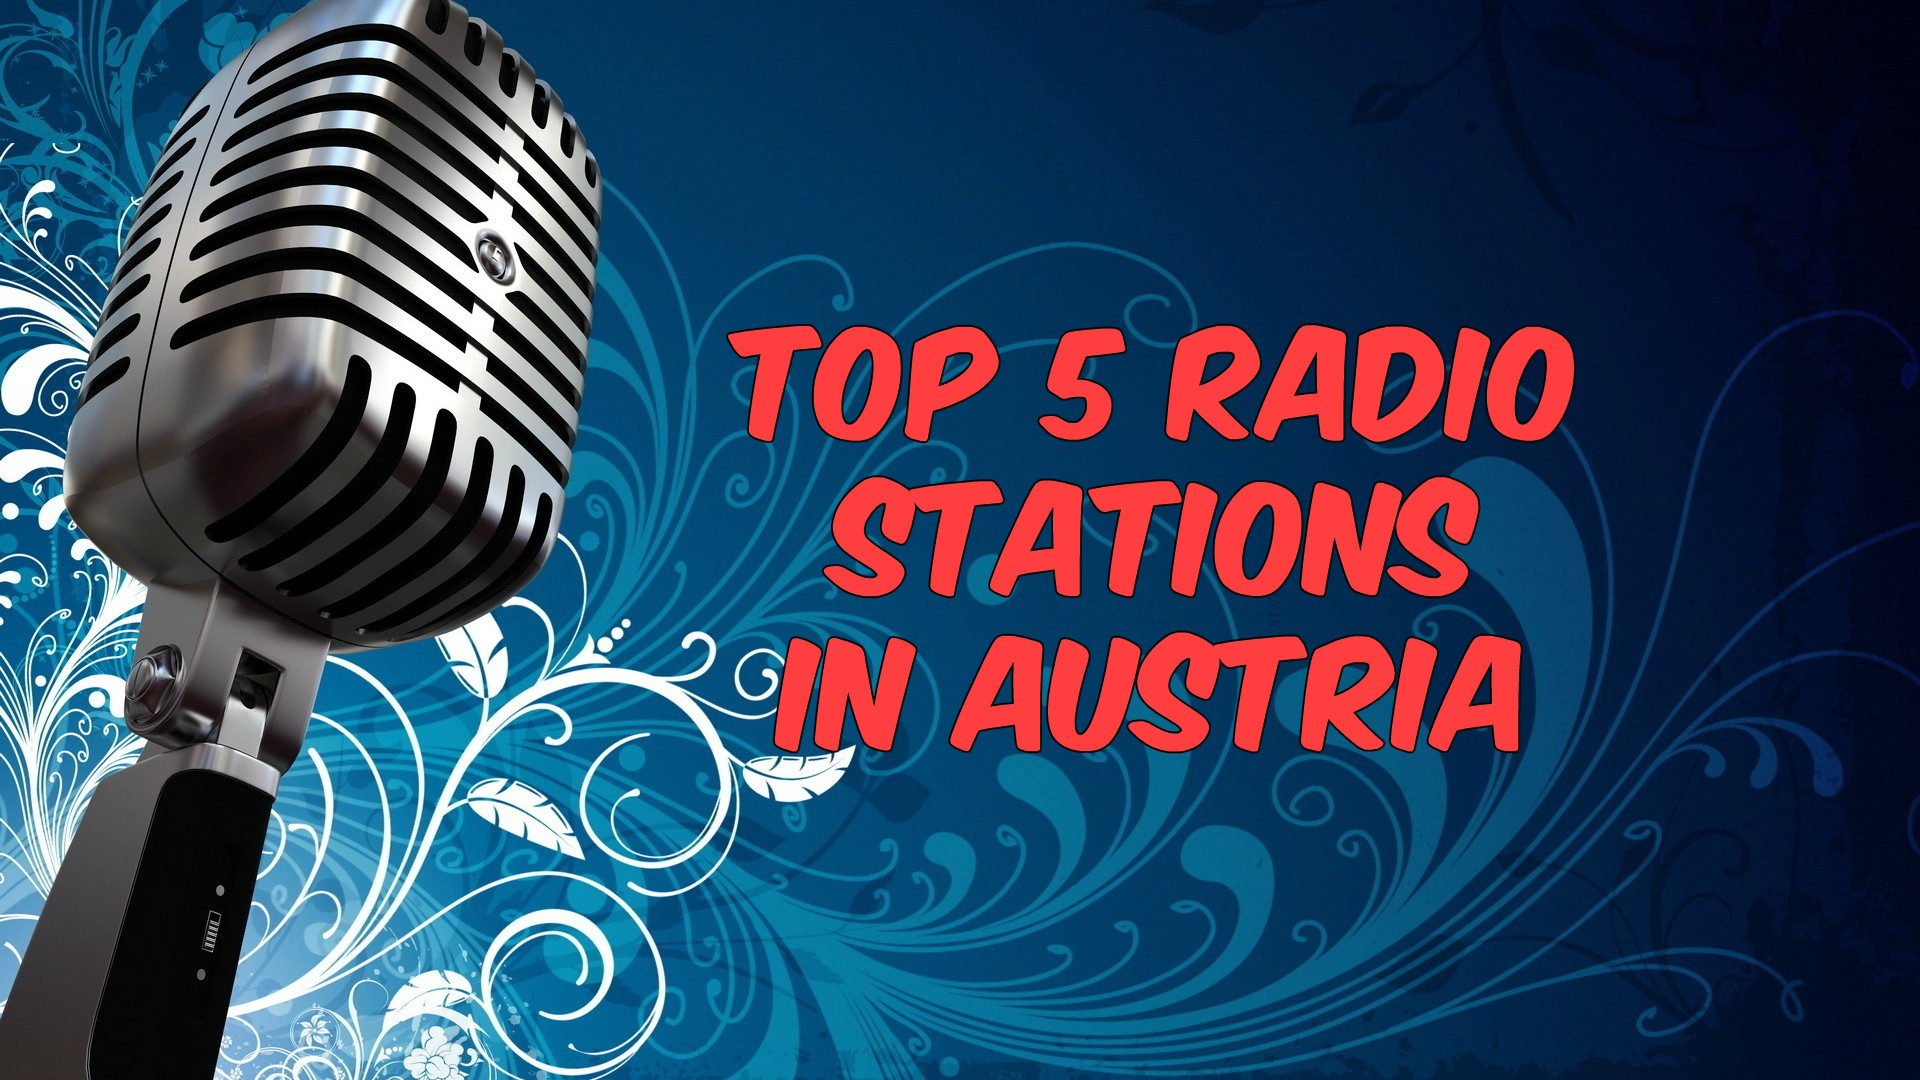 Top 5 radio stations in Austria live